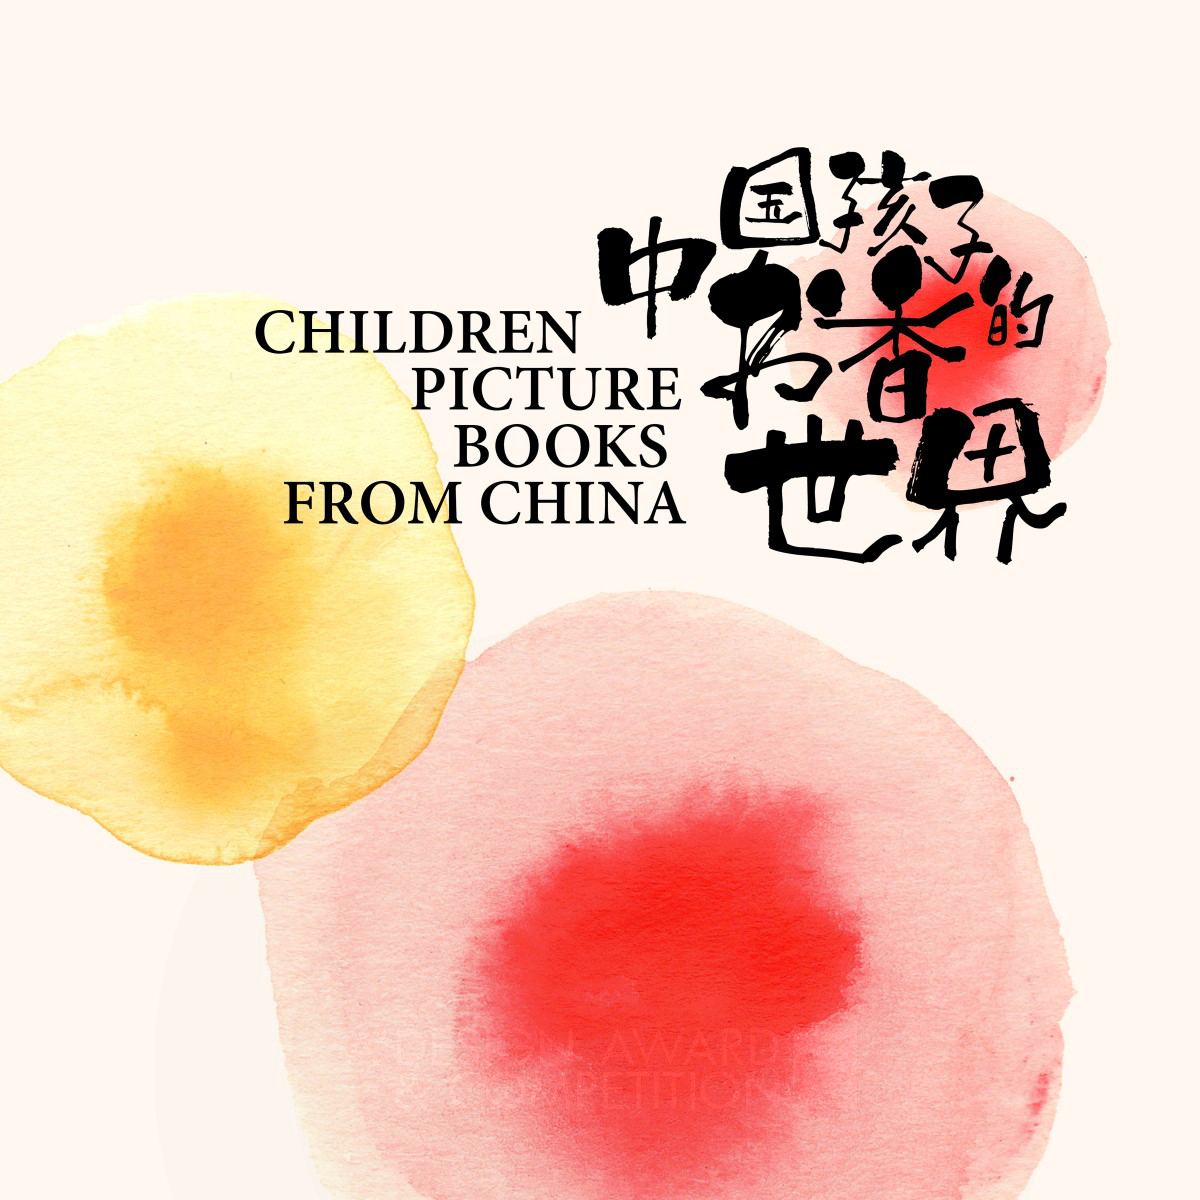 Children Picture Books from China Exhibition Visuals